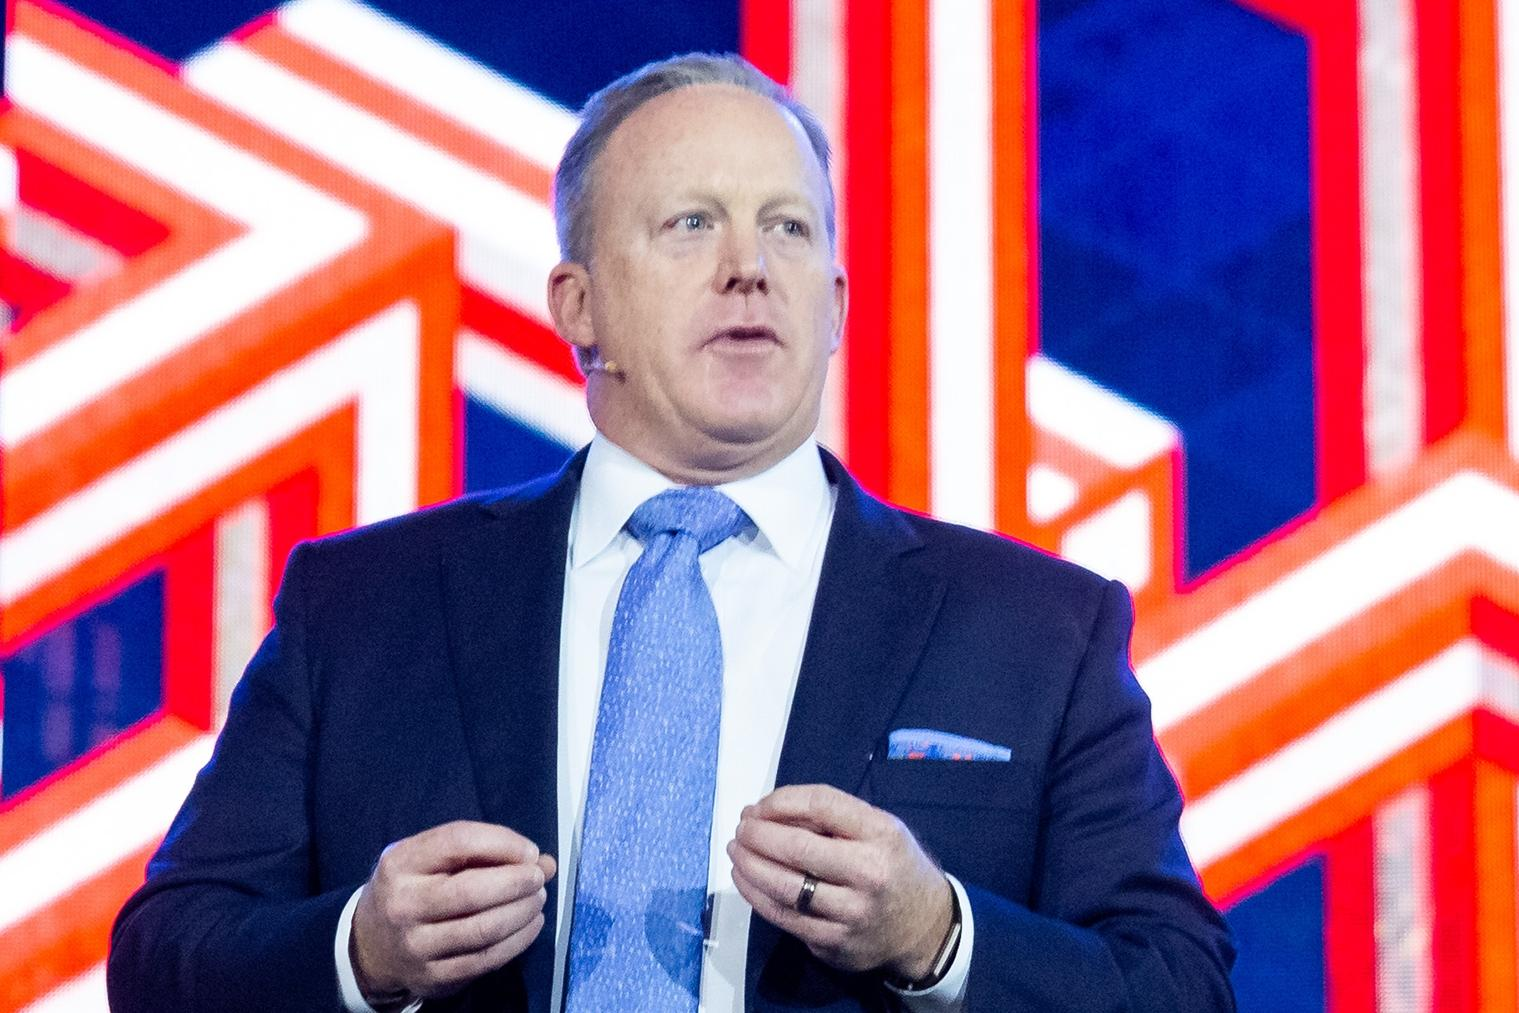 Sean Spicer joins Liberty University in honoring the nation's heroes